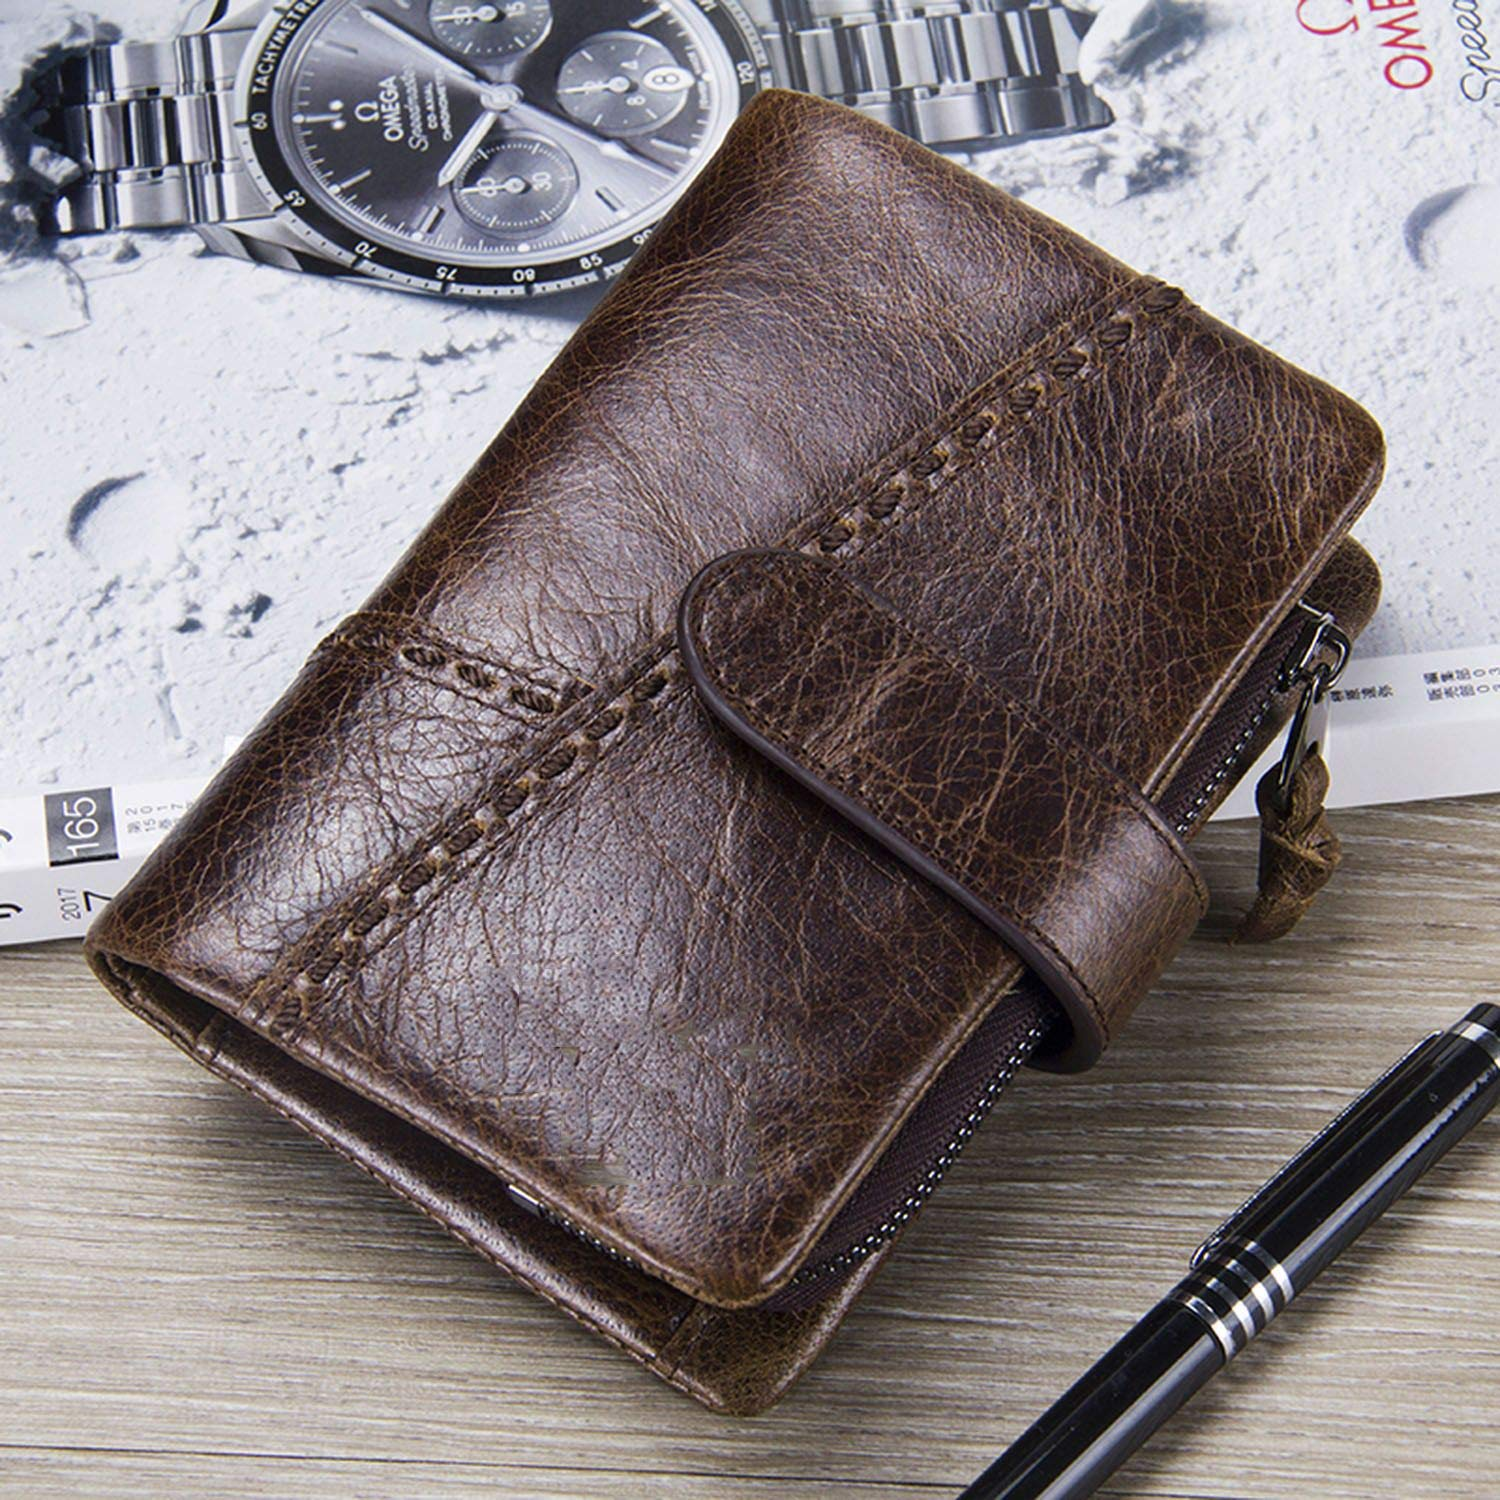 Casual MenS Genuine Leather Short Wallet Hasp Design Key Holders Clutch Purse With Zipper Pouch Wallet